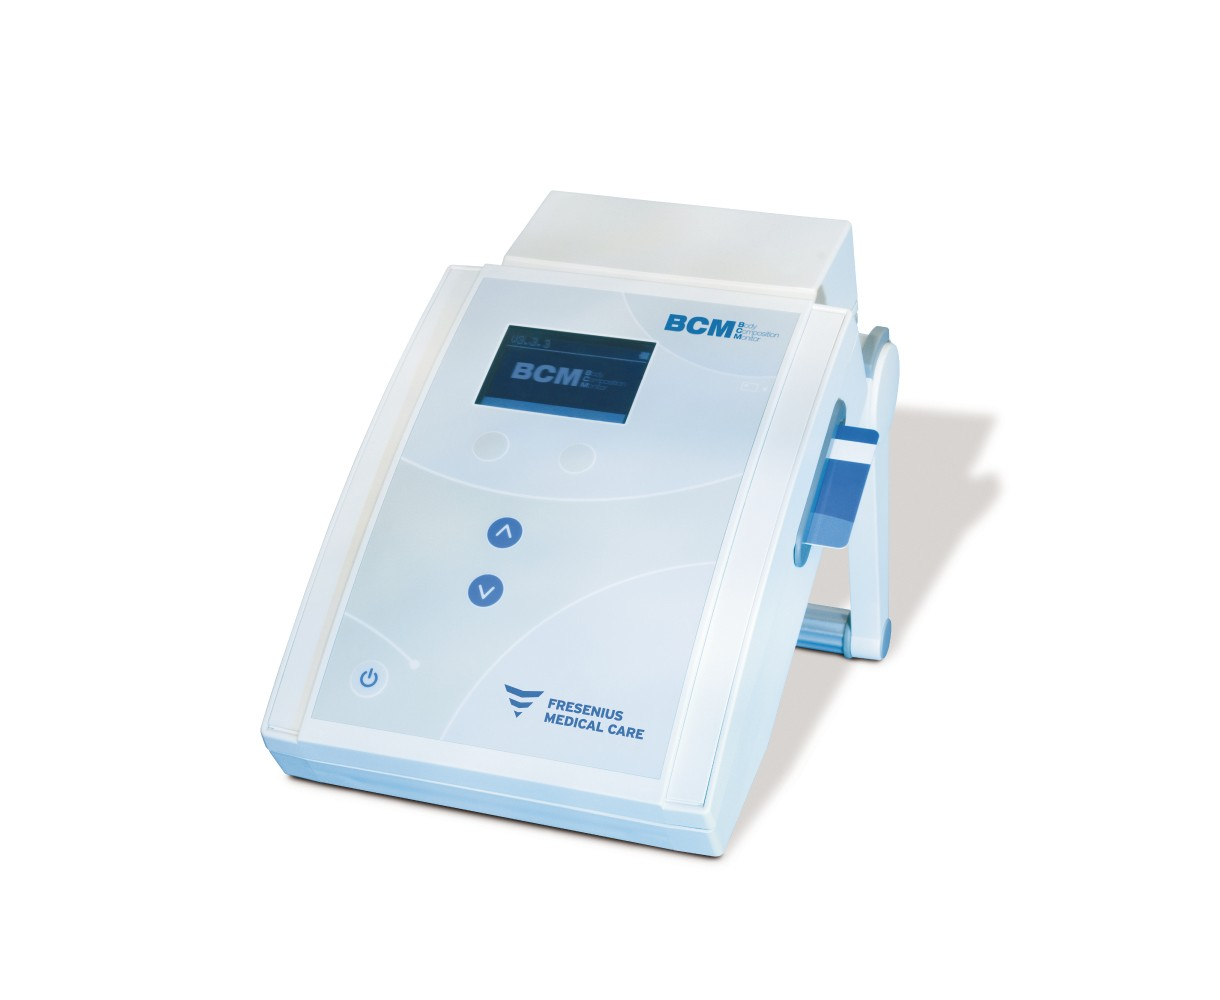 Body Composition Monitor BCM